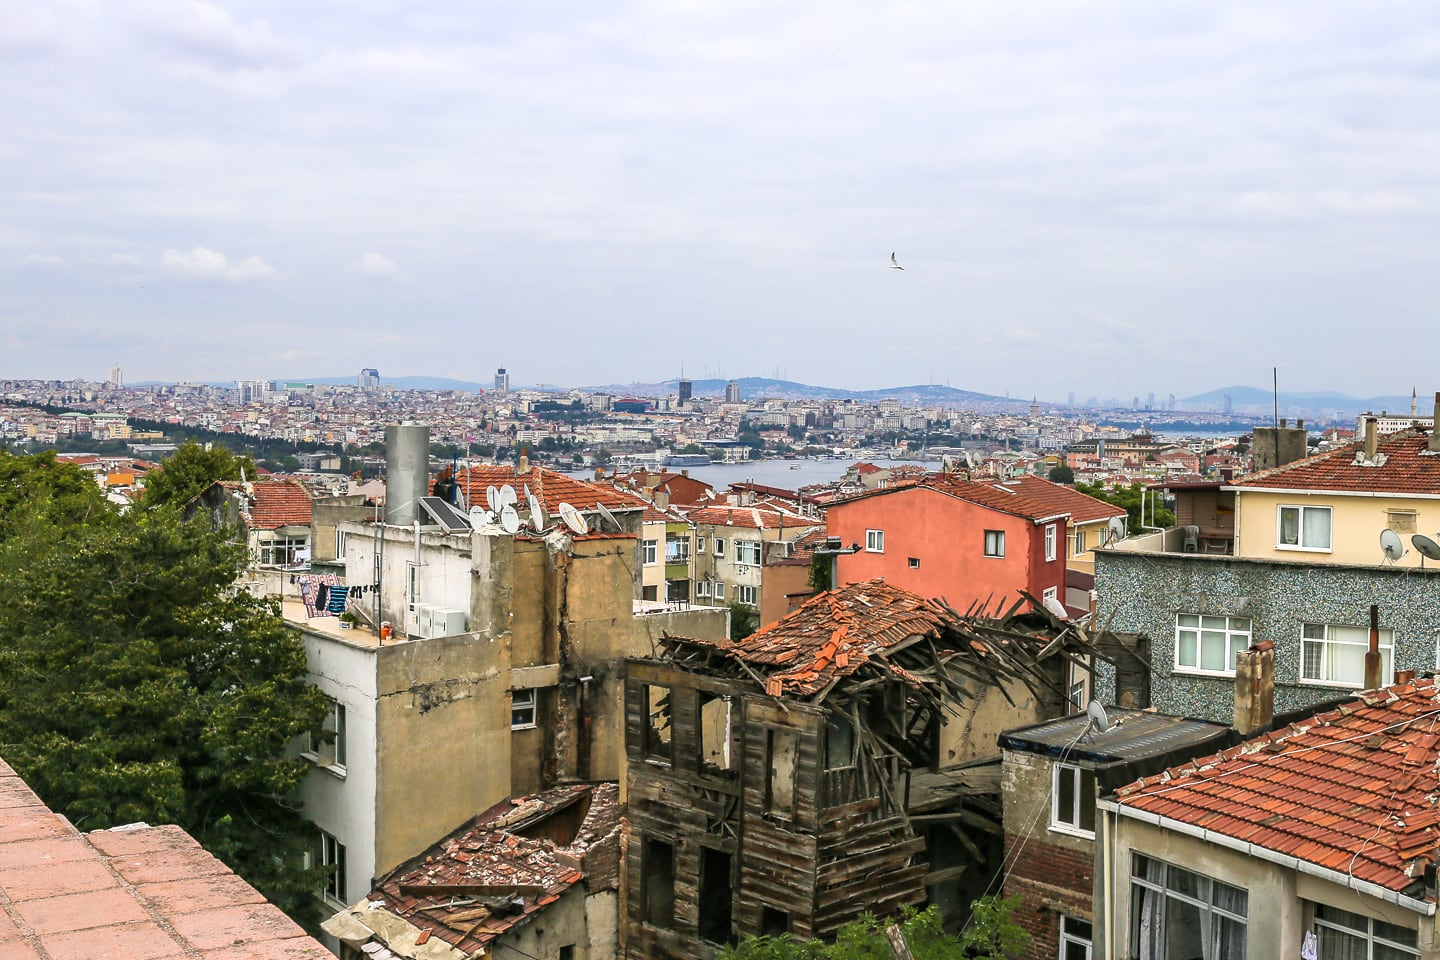 view of istanbul neighborhood from above